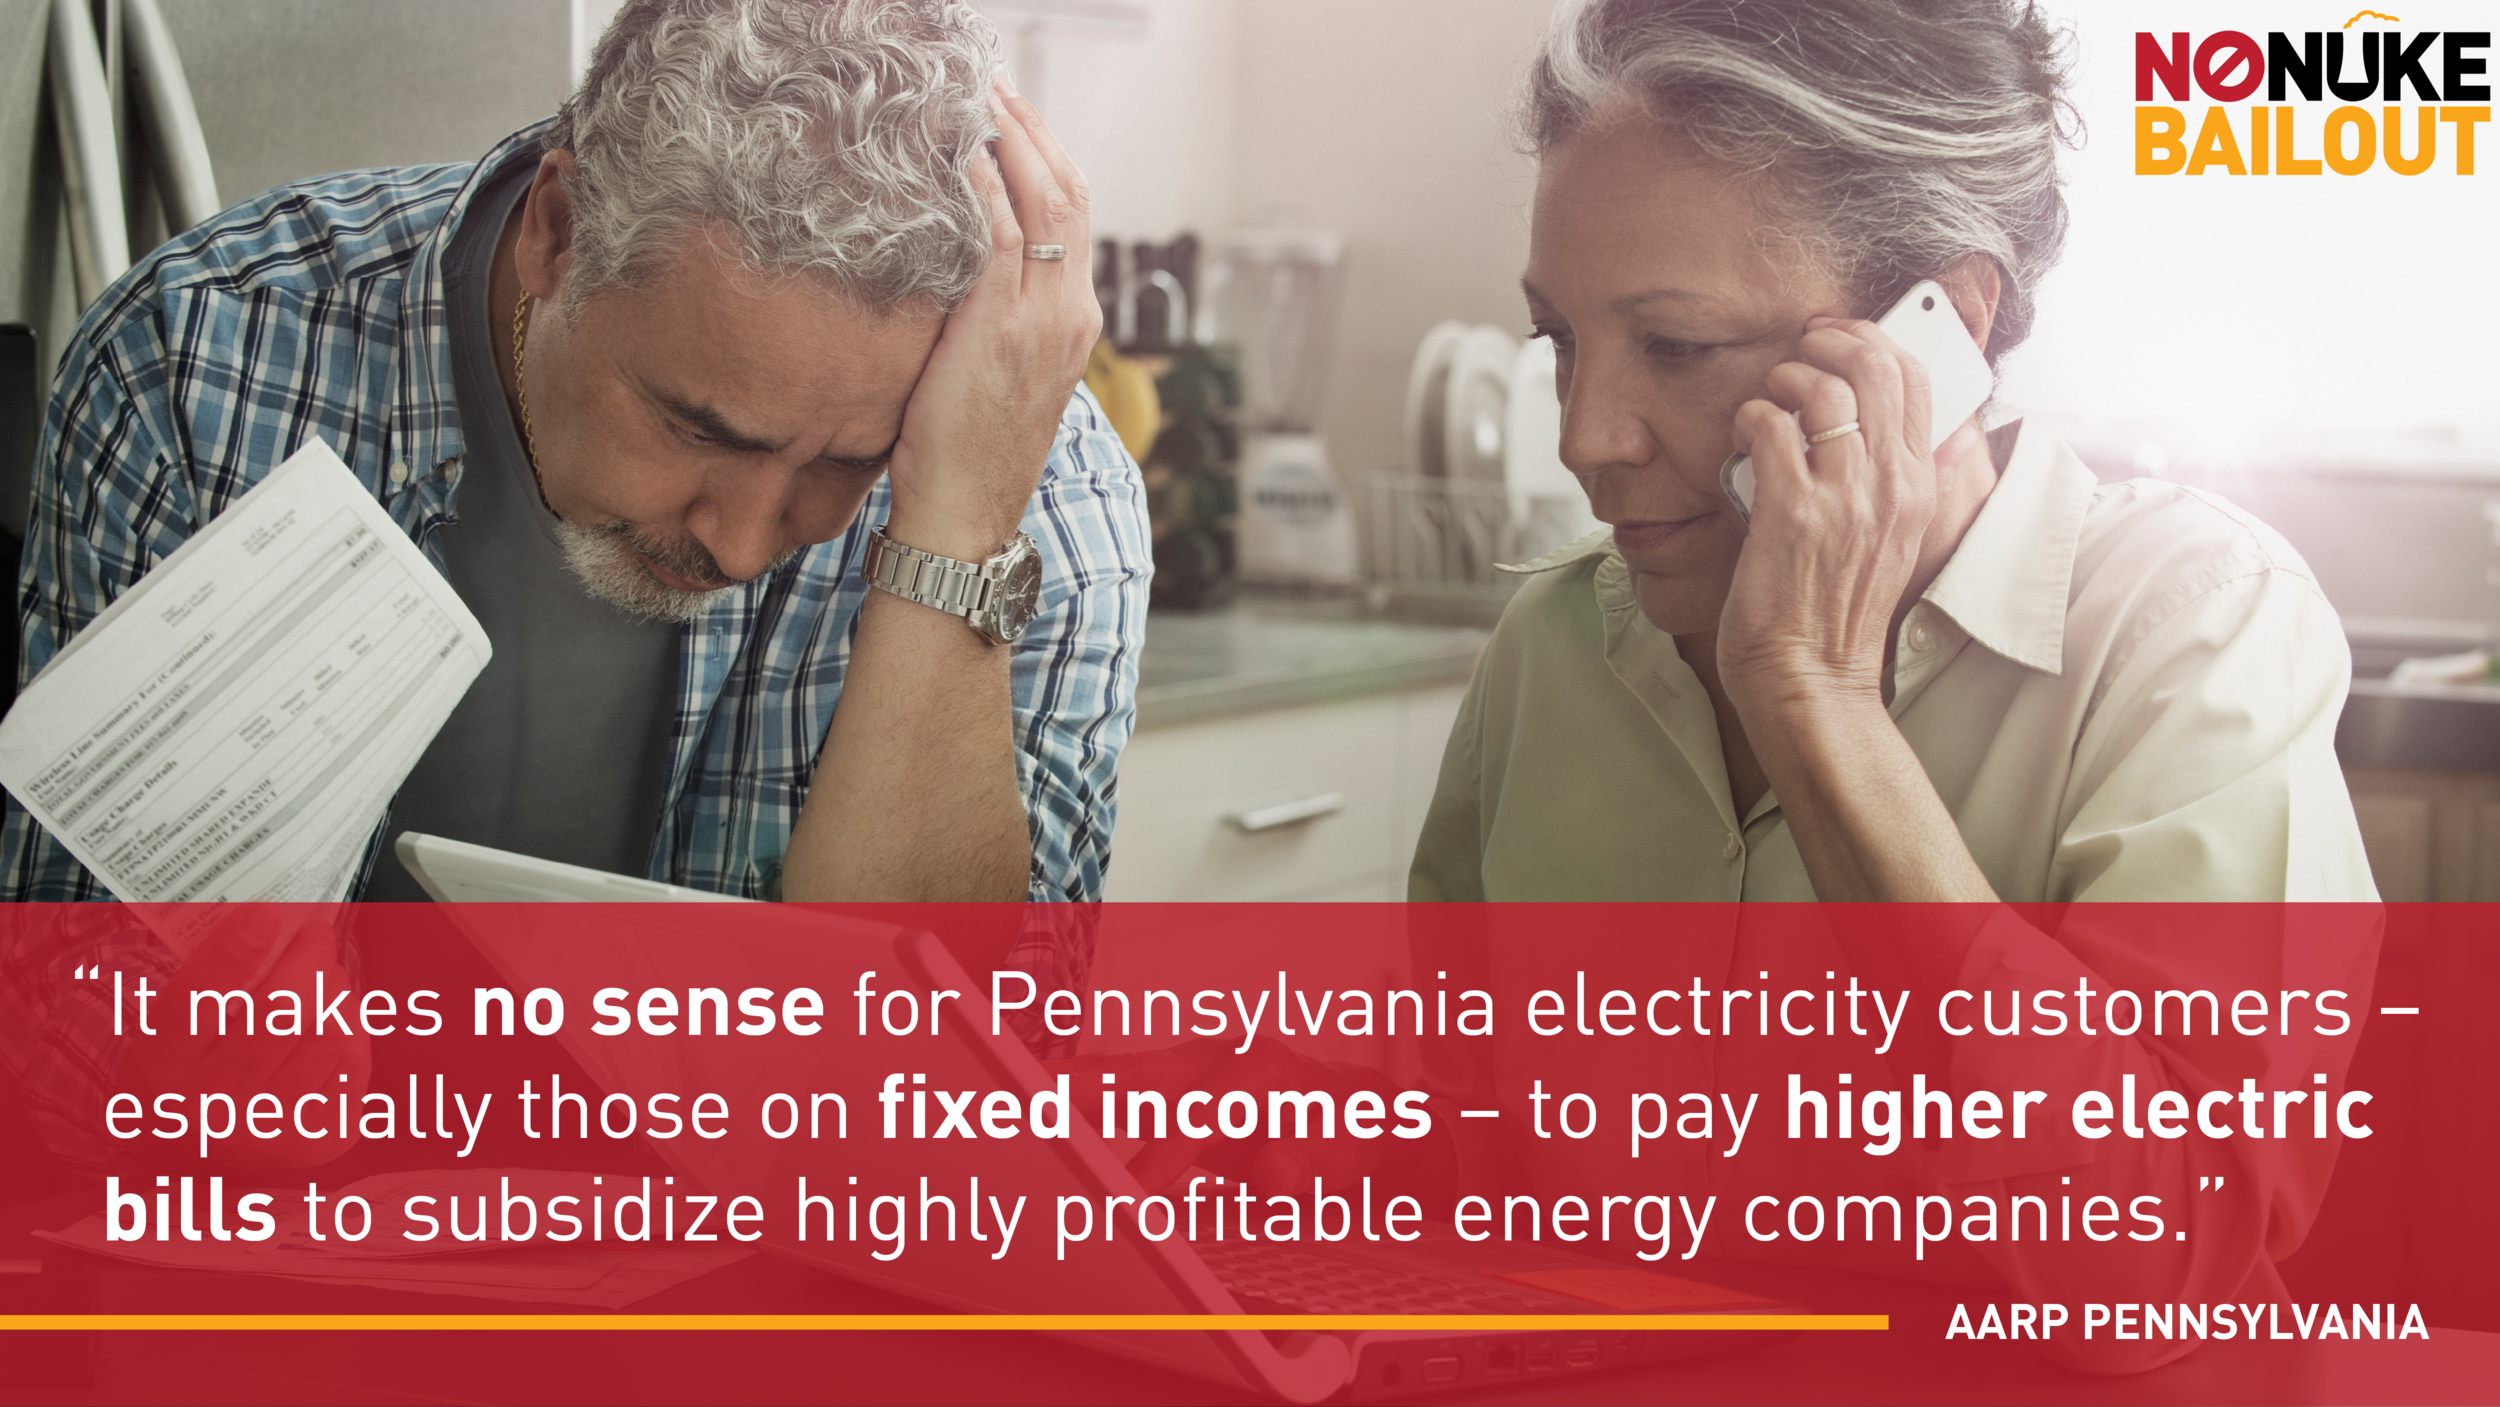 Comment from AARP Pennsylvania about a nuclear bailout in PA.